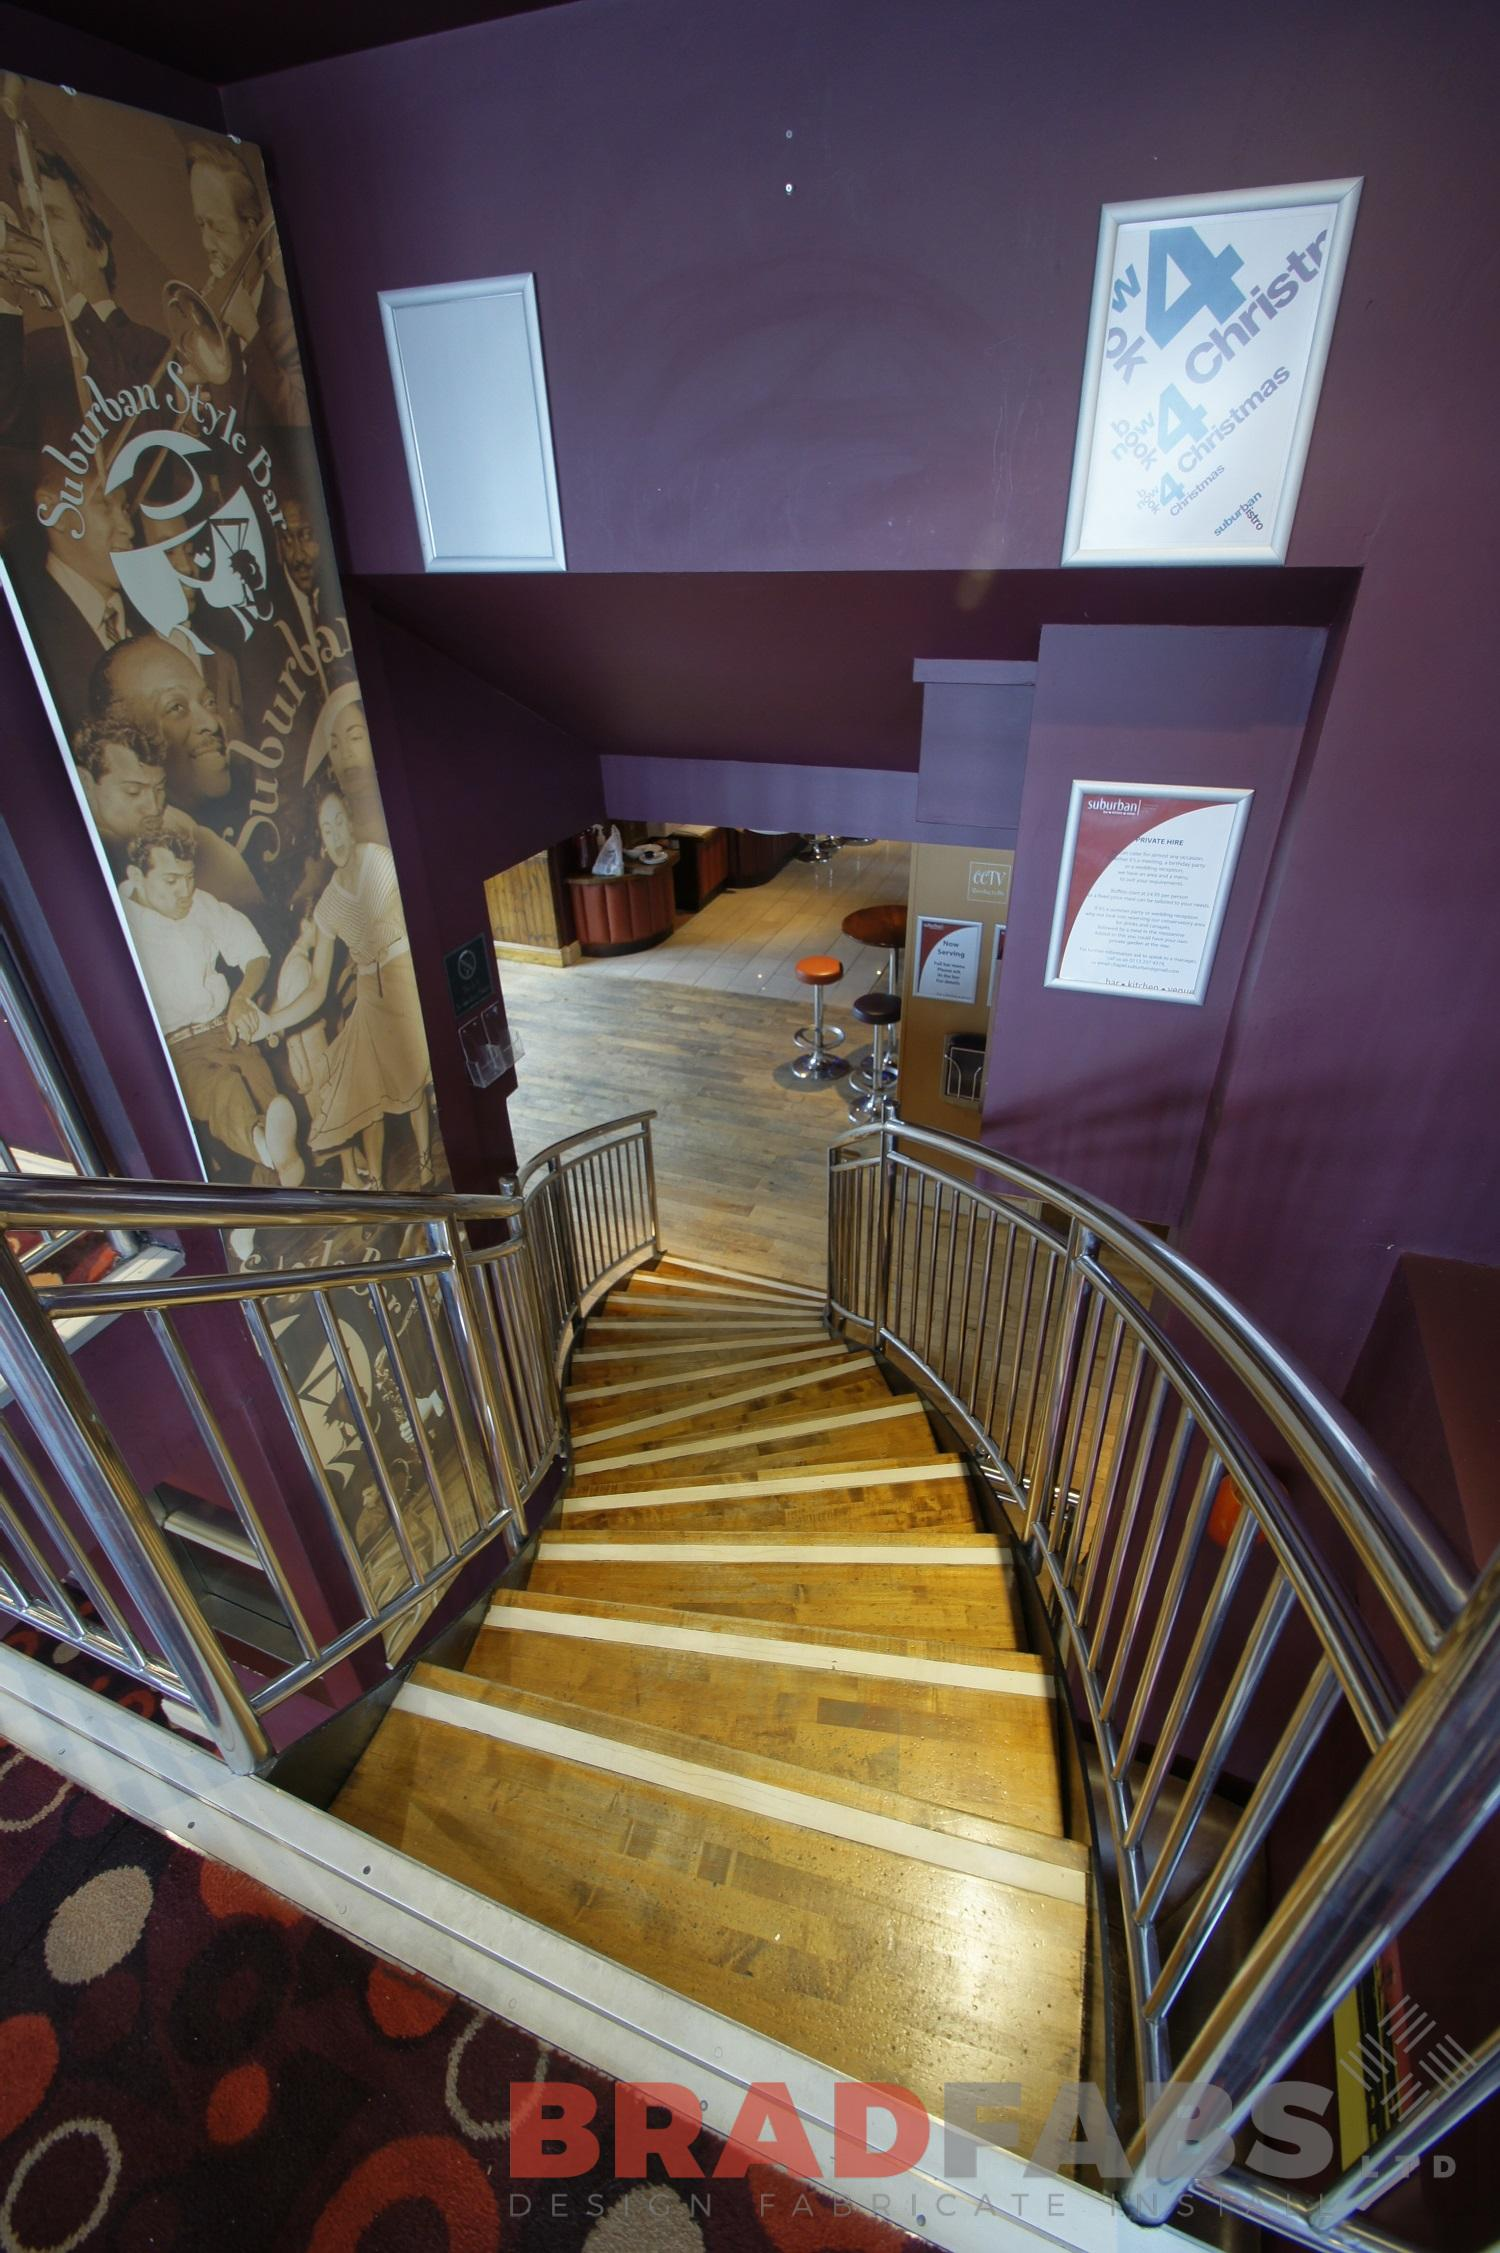 Commercial helix staircase by Bradfabs, UK manufacturers